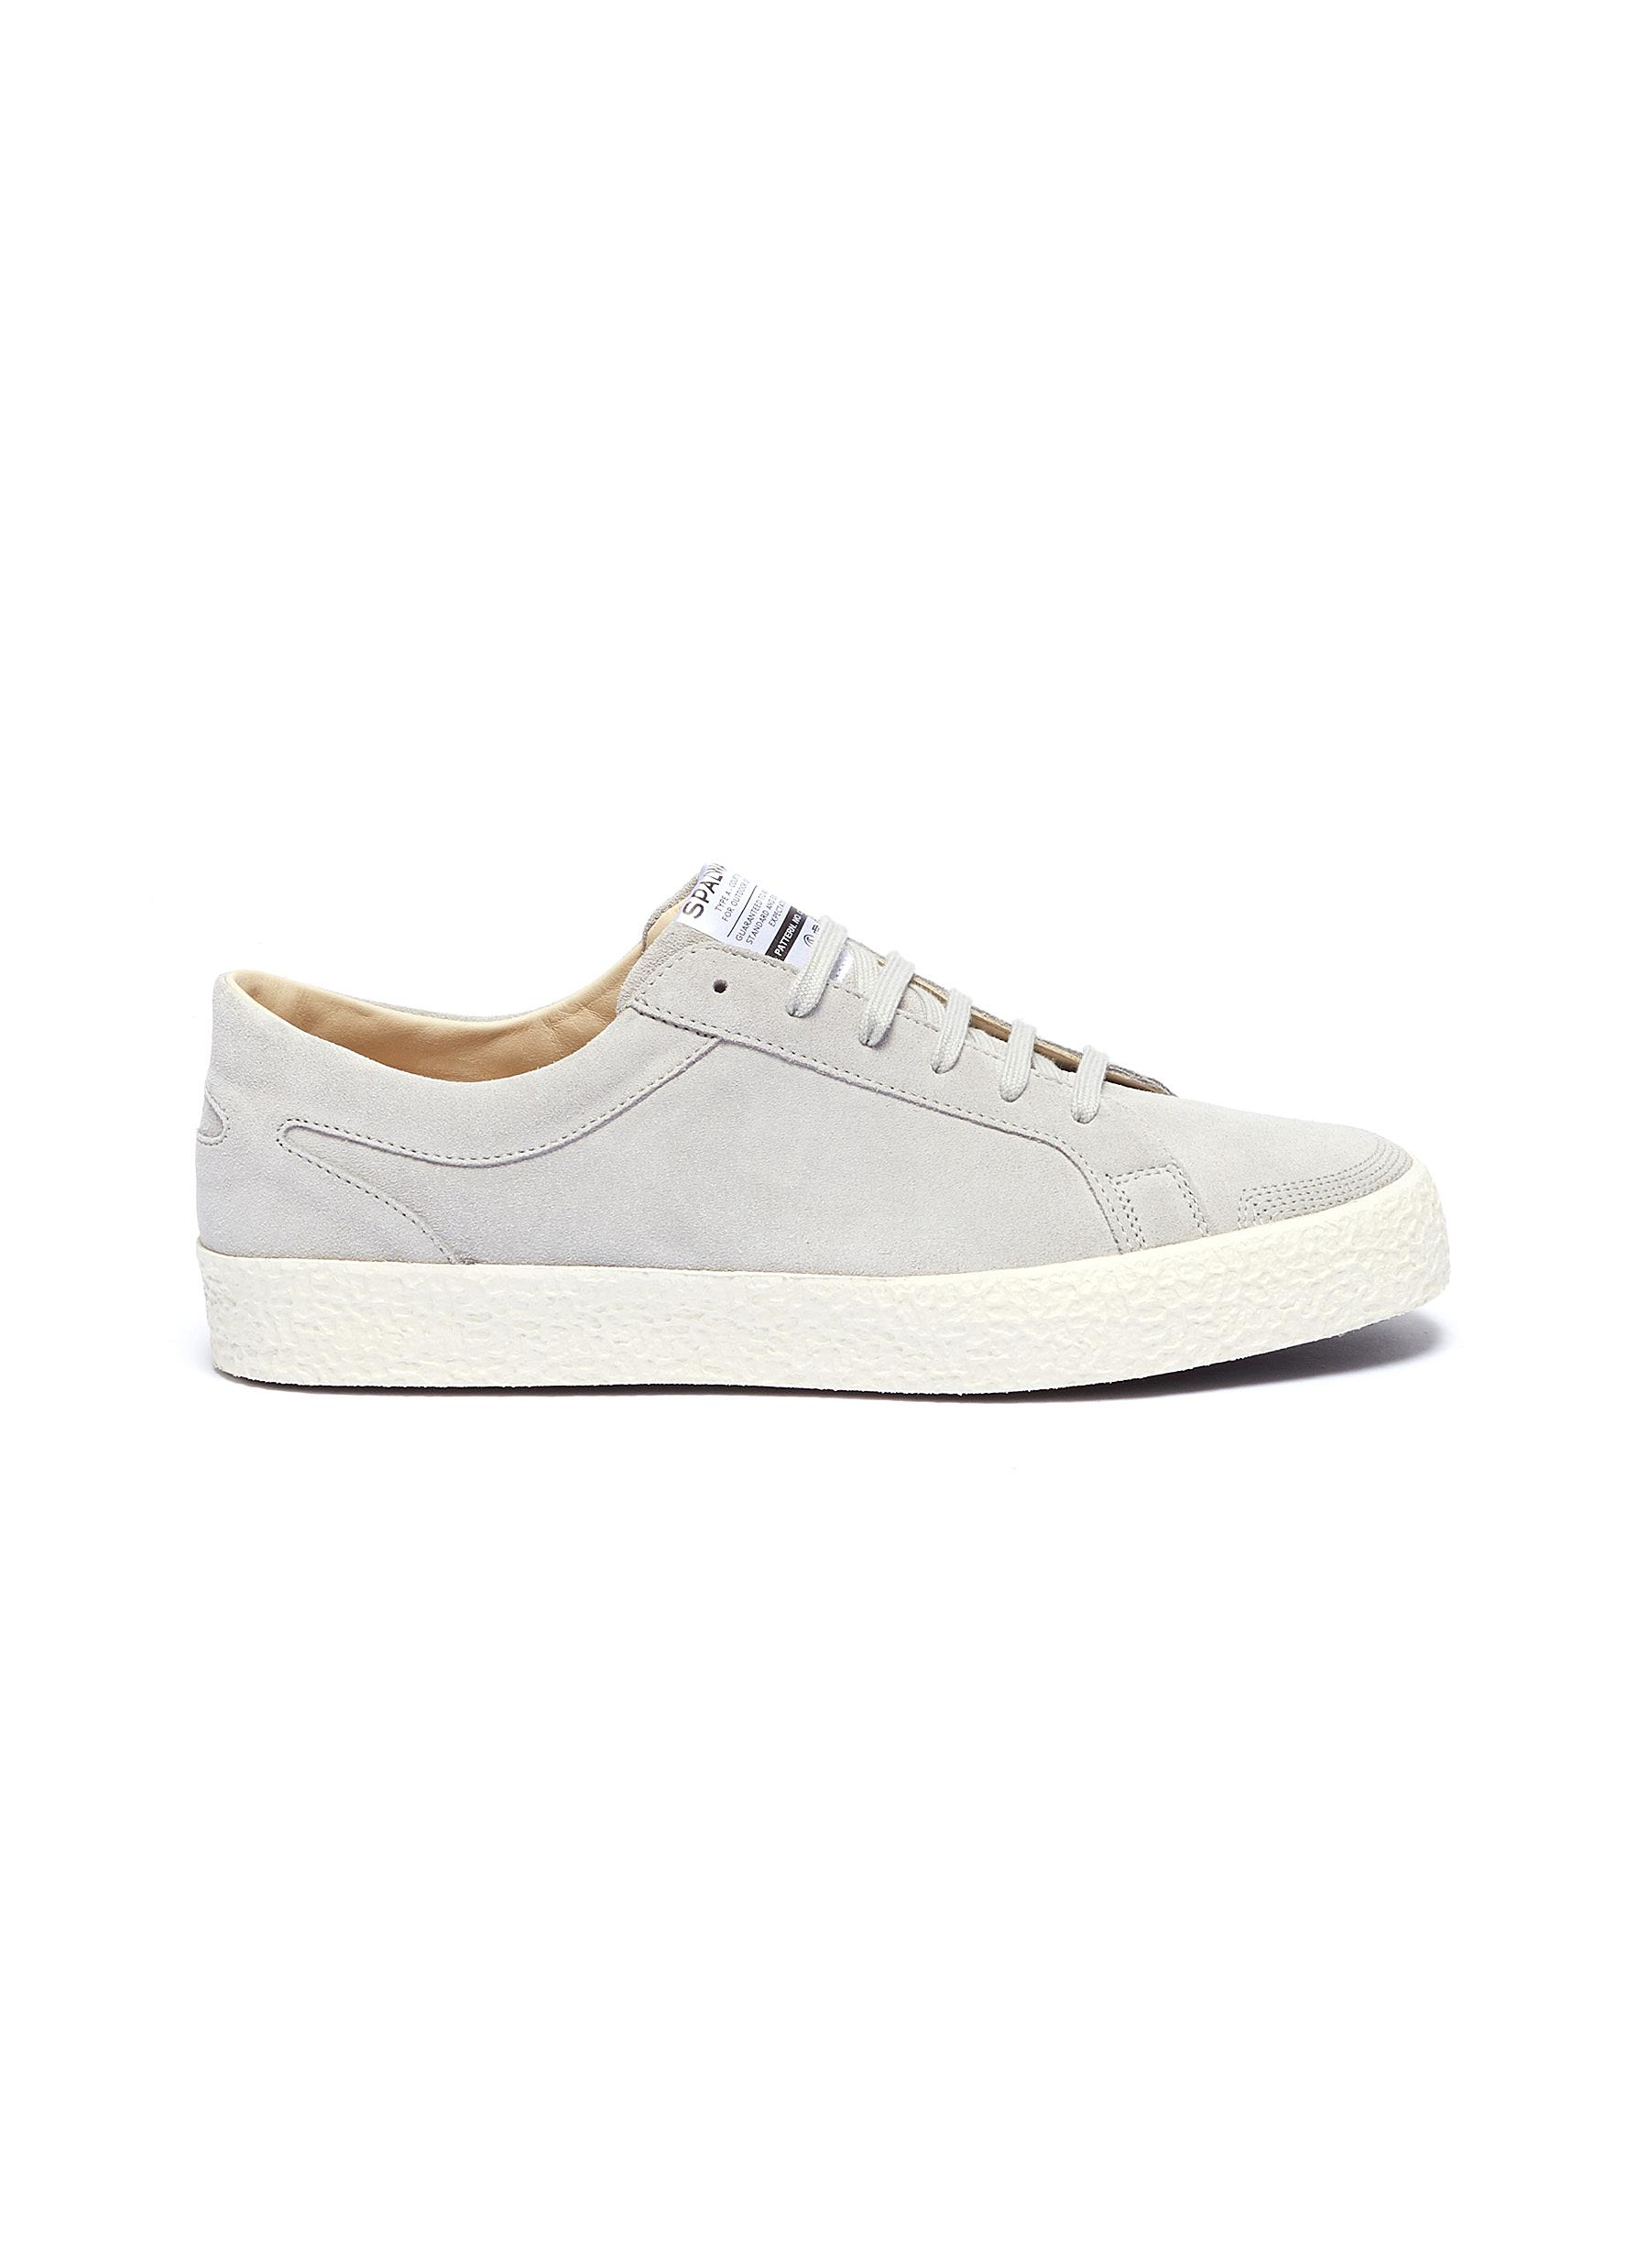 a32364eef56189 Main View - Click To Enlarge - Spalwart -  Court Derby Low  suede sneakers